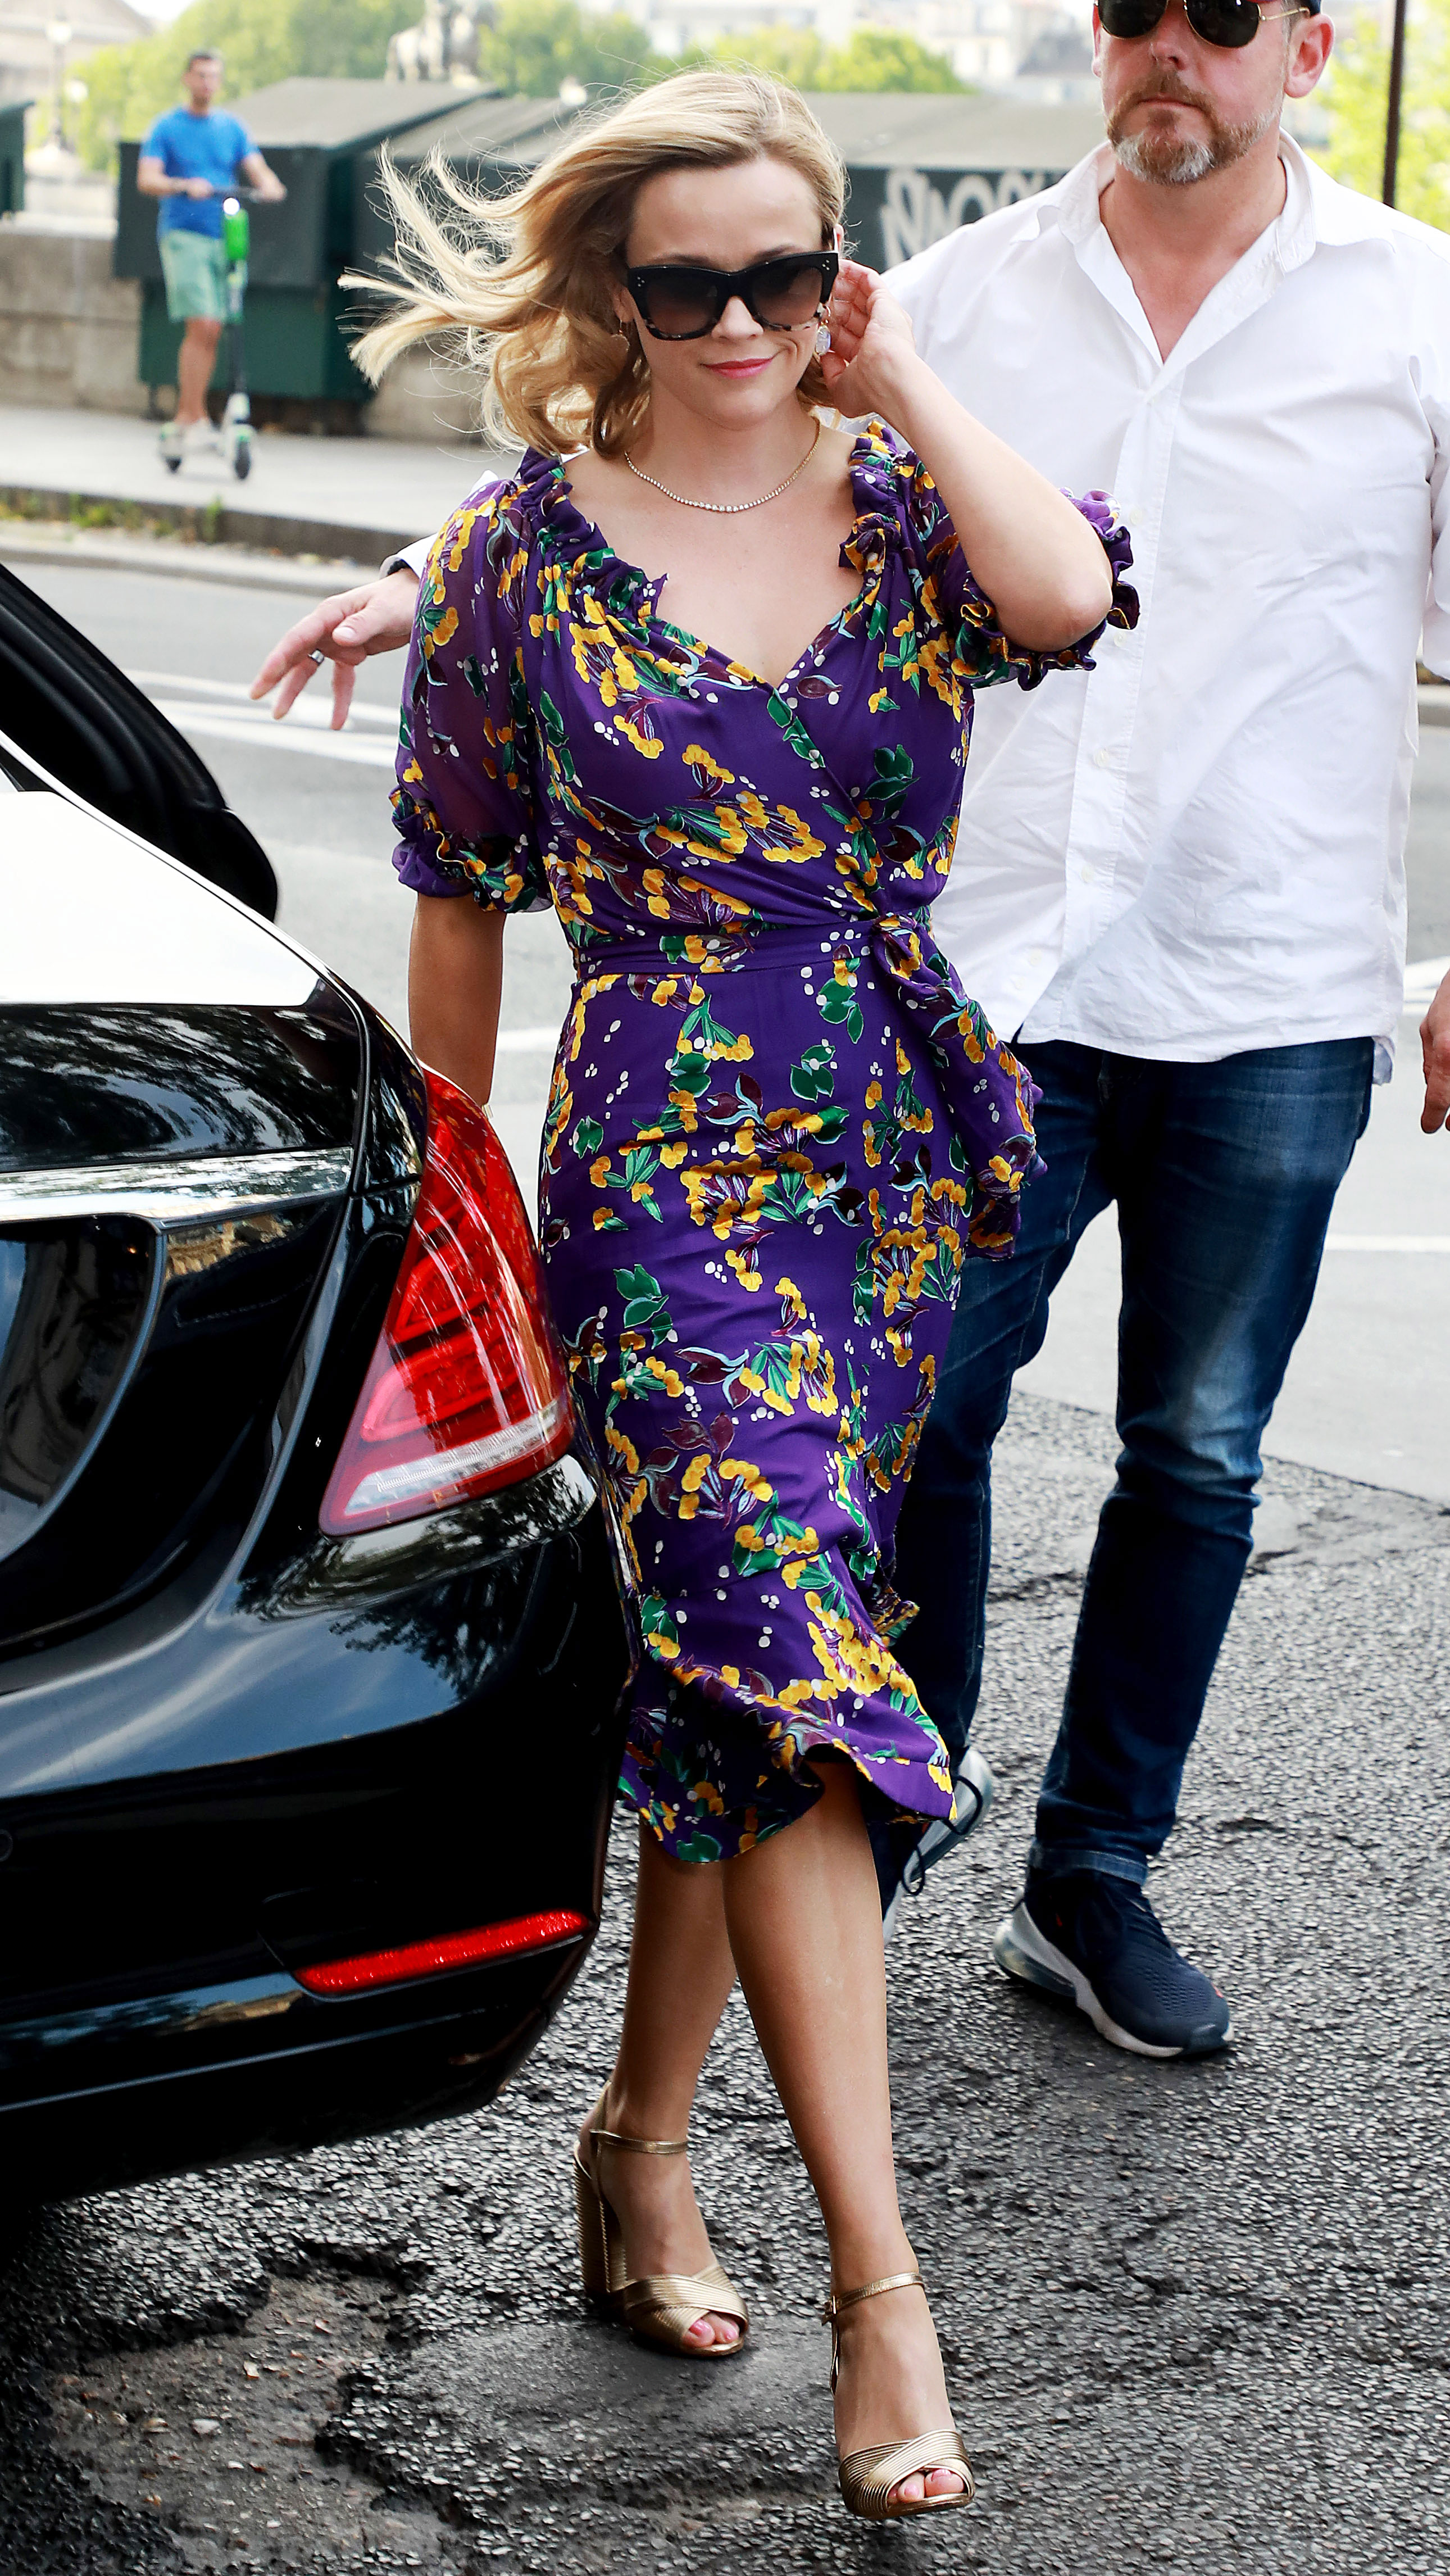 Zoe Kravitz Karl Glusman attend pre-wedding party French restaurant Lapérous Paris - The BLL lead was all dolled up for the occasion in a fitted floral purple wrap dress.